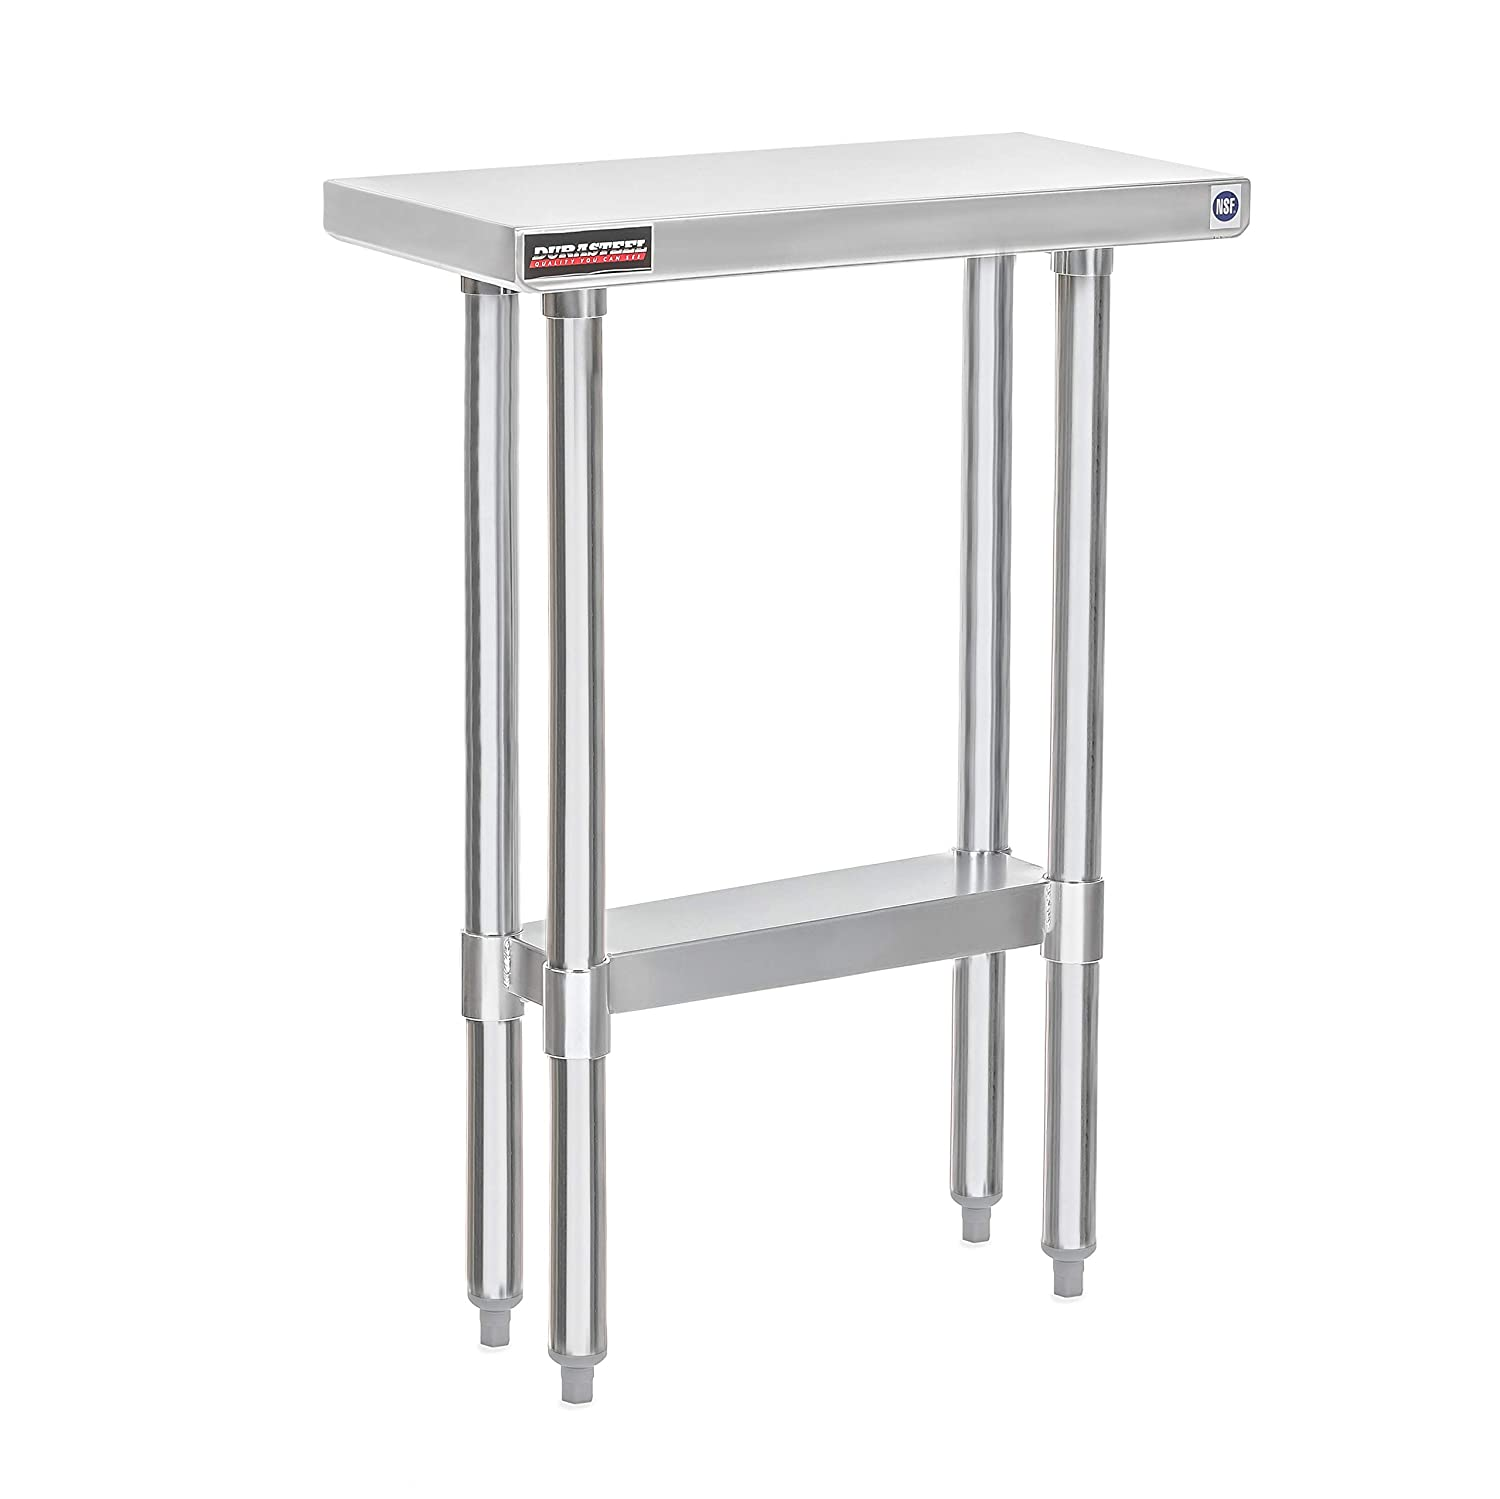 "DuraSteel Stainless Steel Work Table 24"" x 12"" x 34"" Height - Food Prep Commercial Grade Worktable - NSF Certified - Fits for use in Restaurant, Business, Warehouse, Home, Kitchen, Garage"